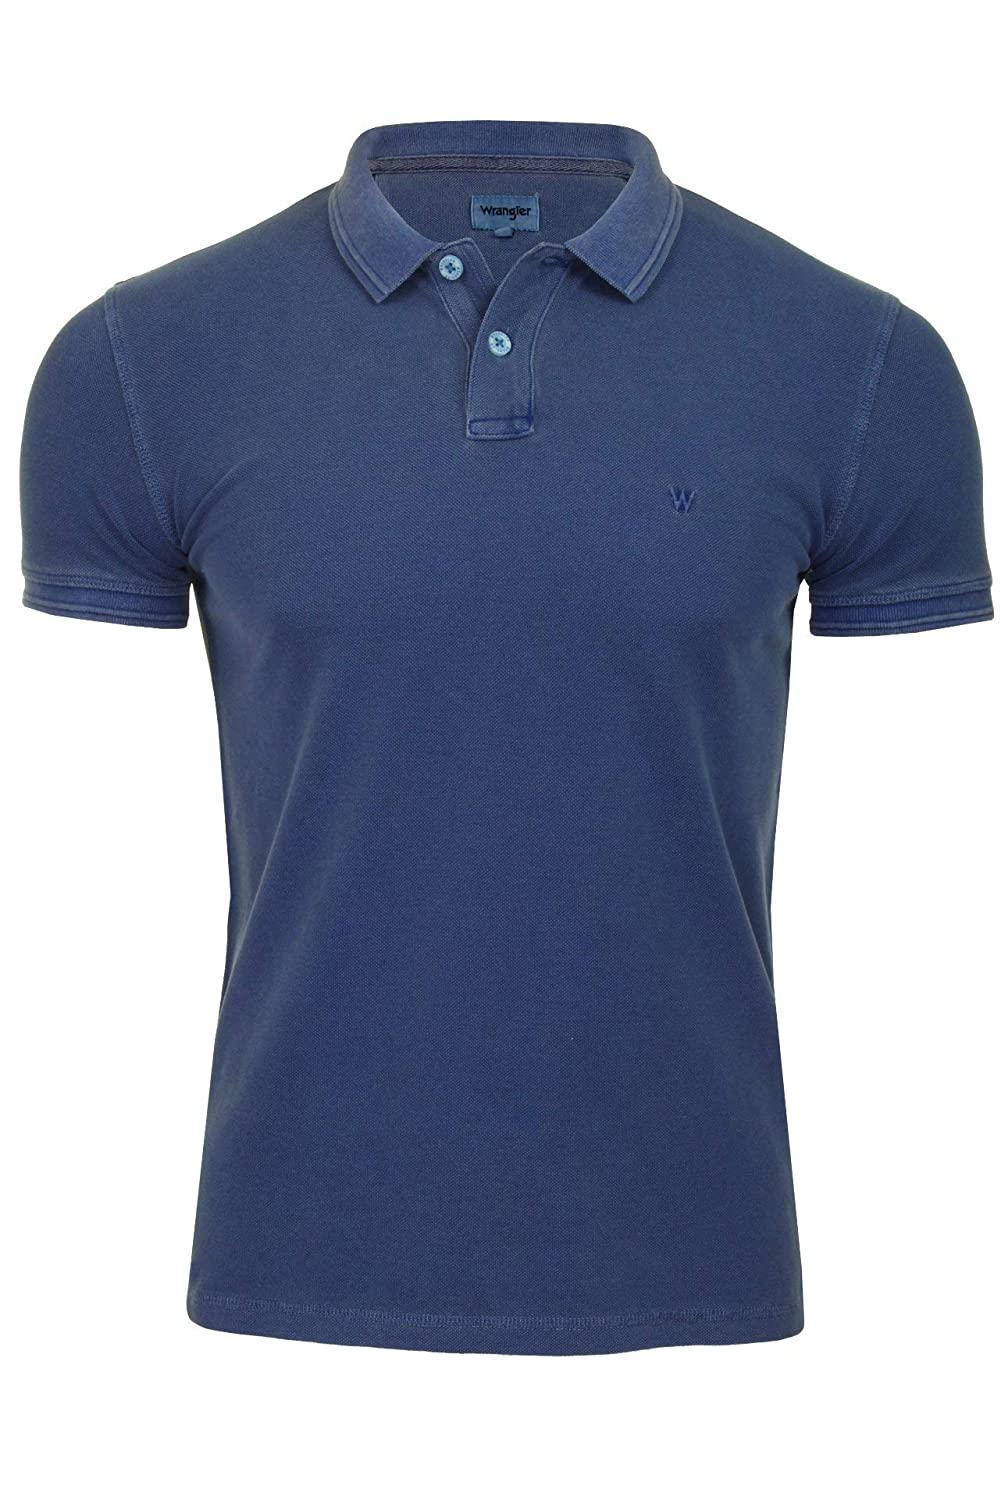 bfe59a81 Wrangler Mens Overdye Pique Polo T-Shirt: Amazon.co.uk: Clothing